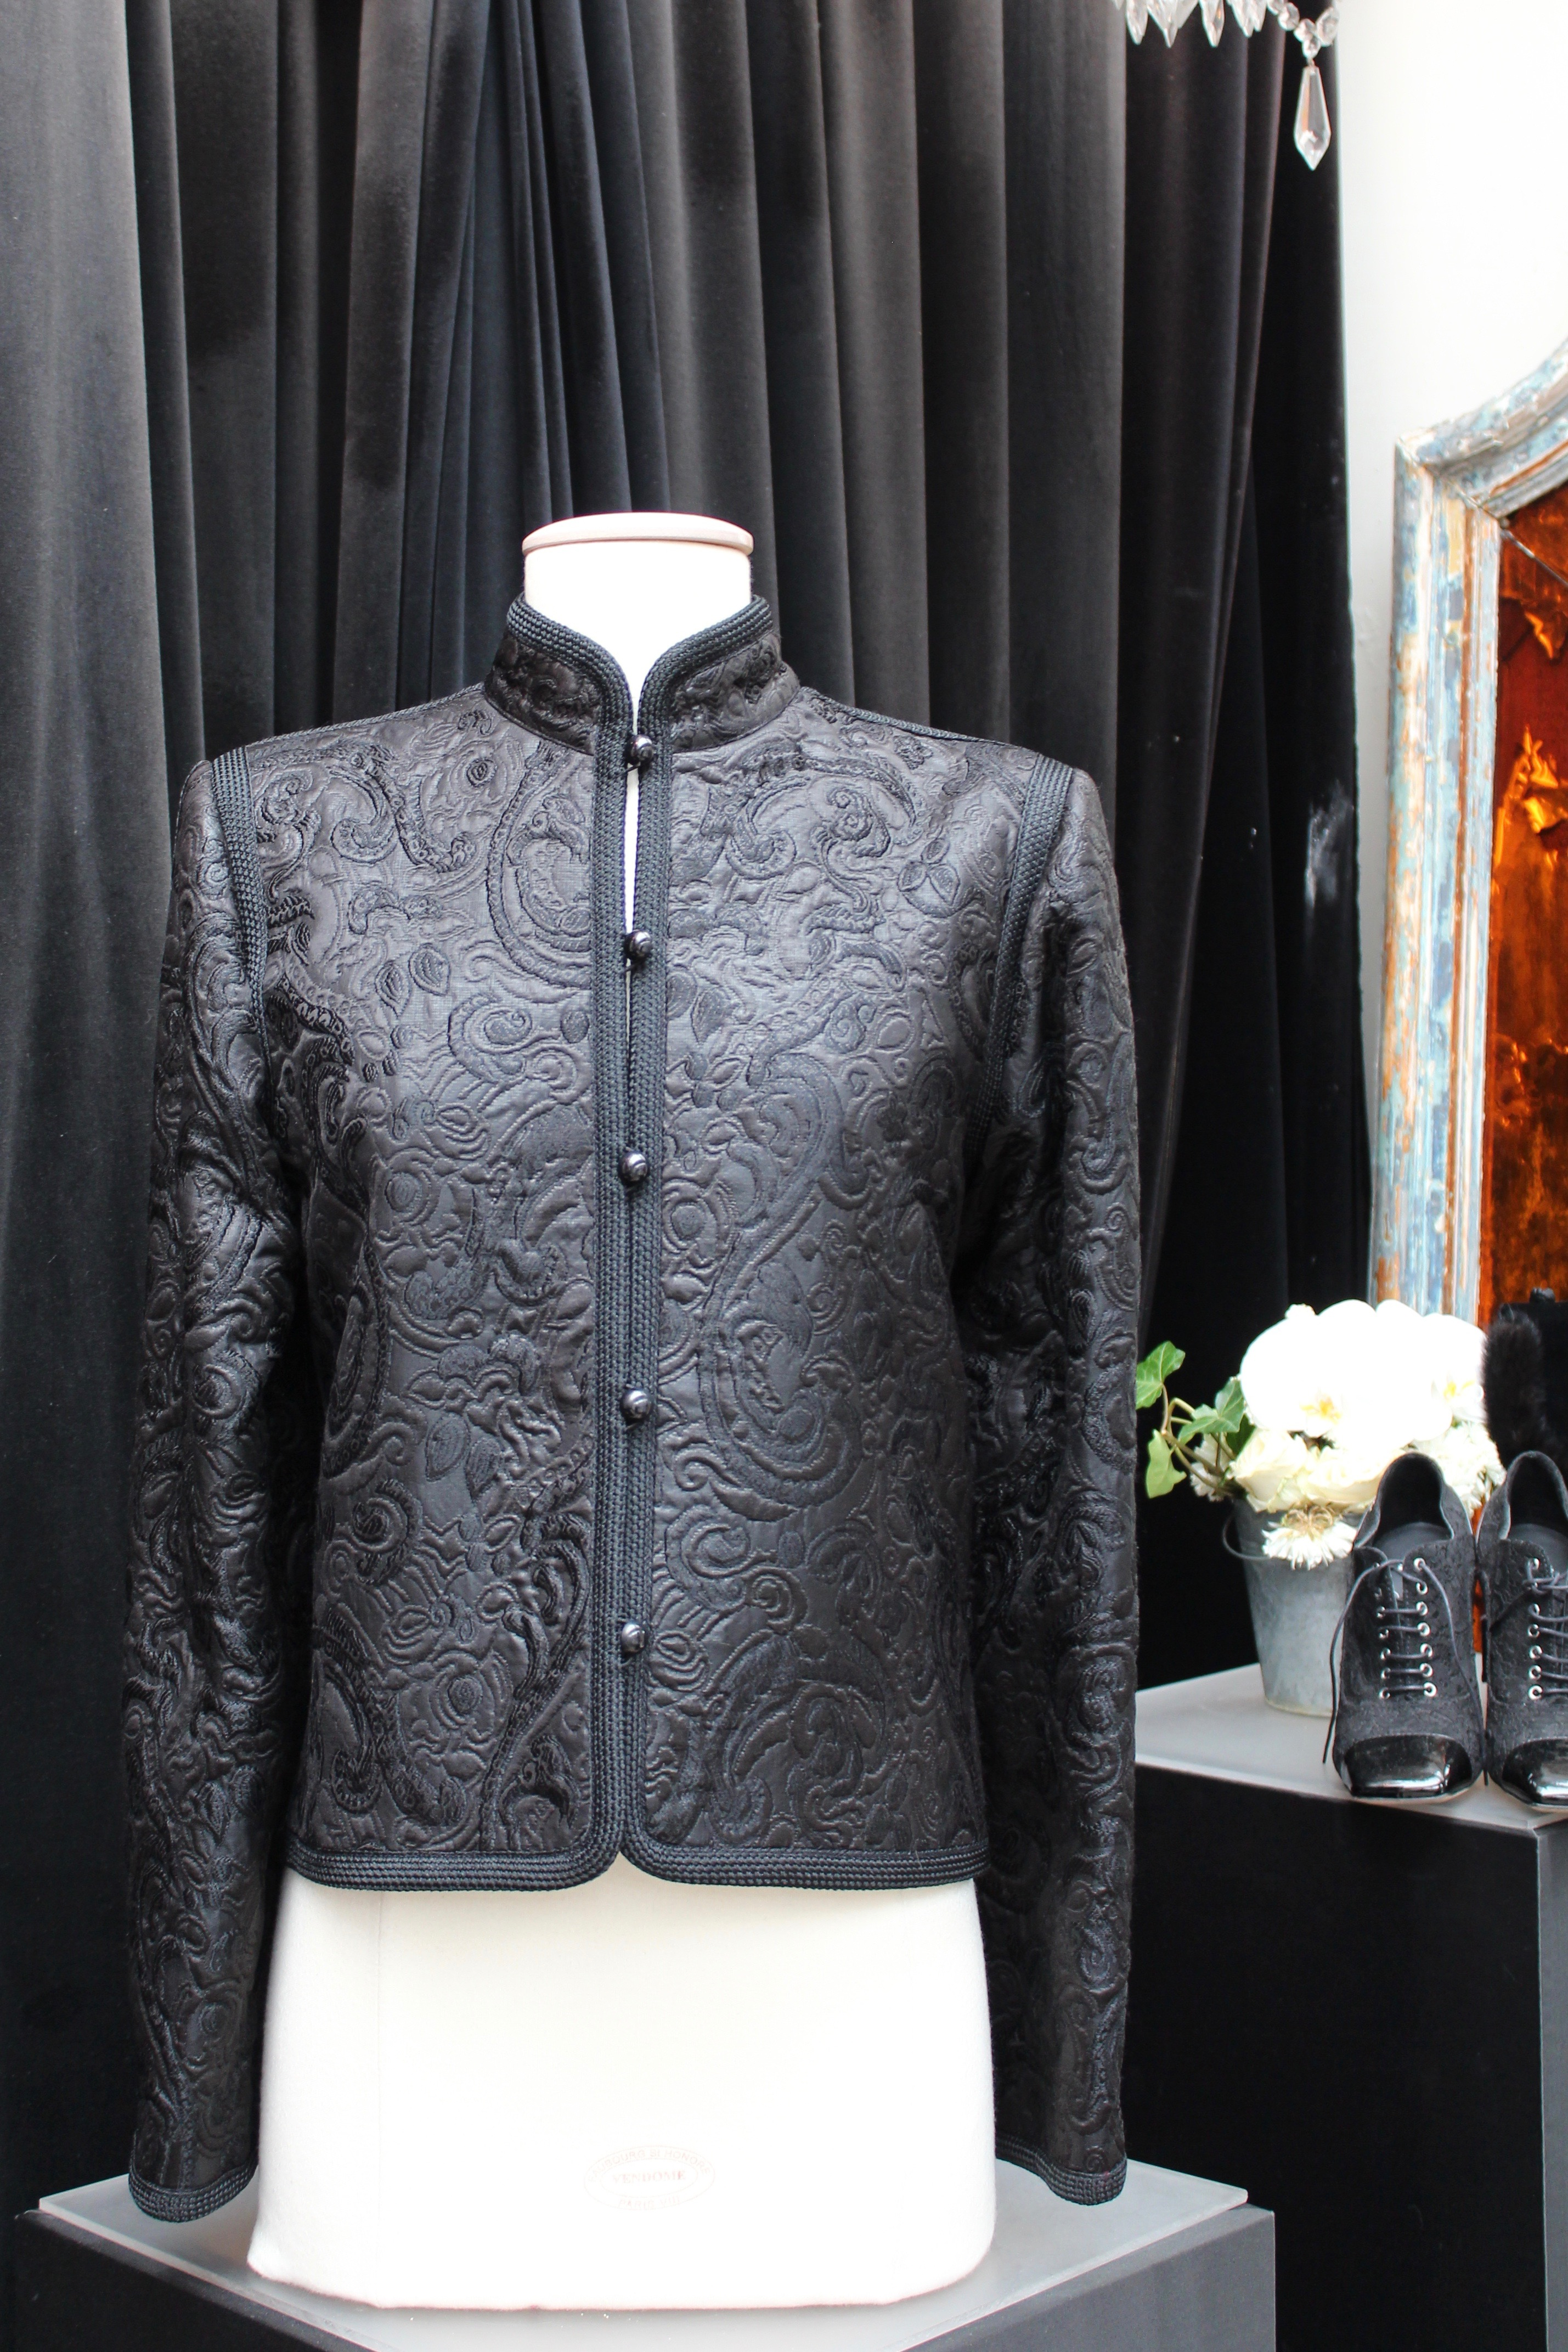 7a3f37c7dc4 Yves Saint Laurent 1980s - Mao collar jacket in black brocade and trimmings